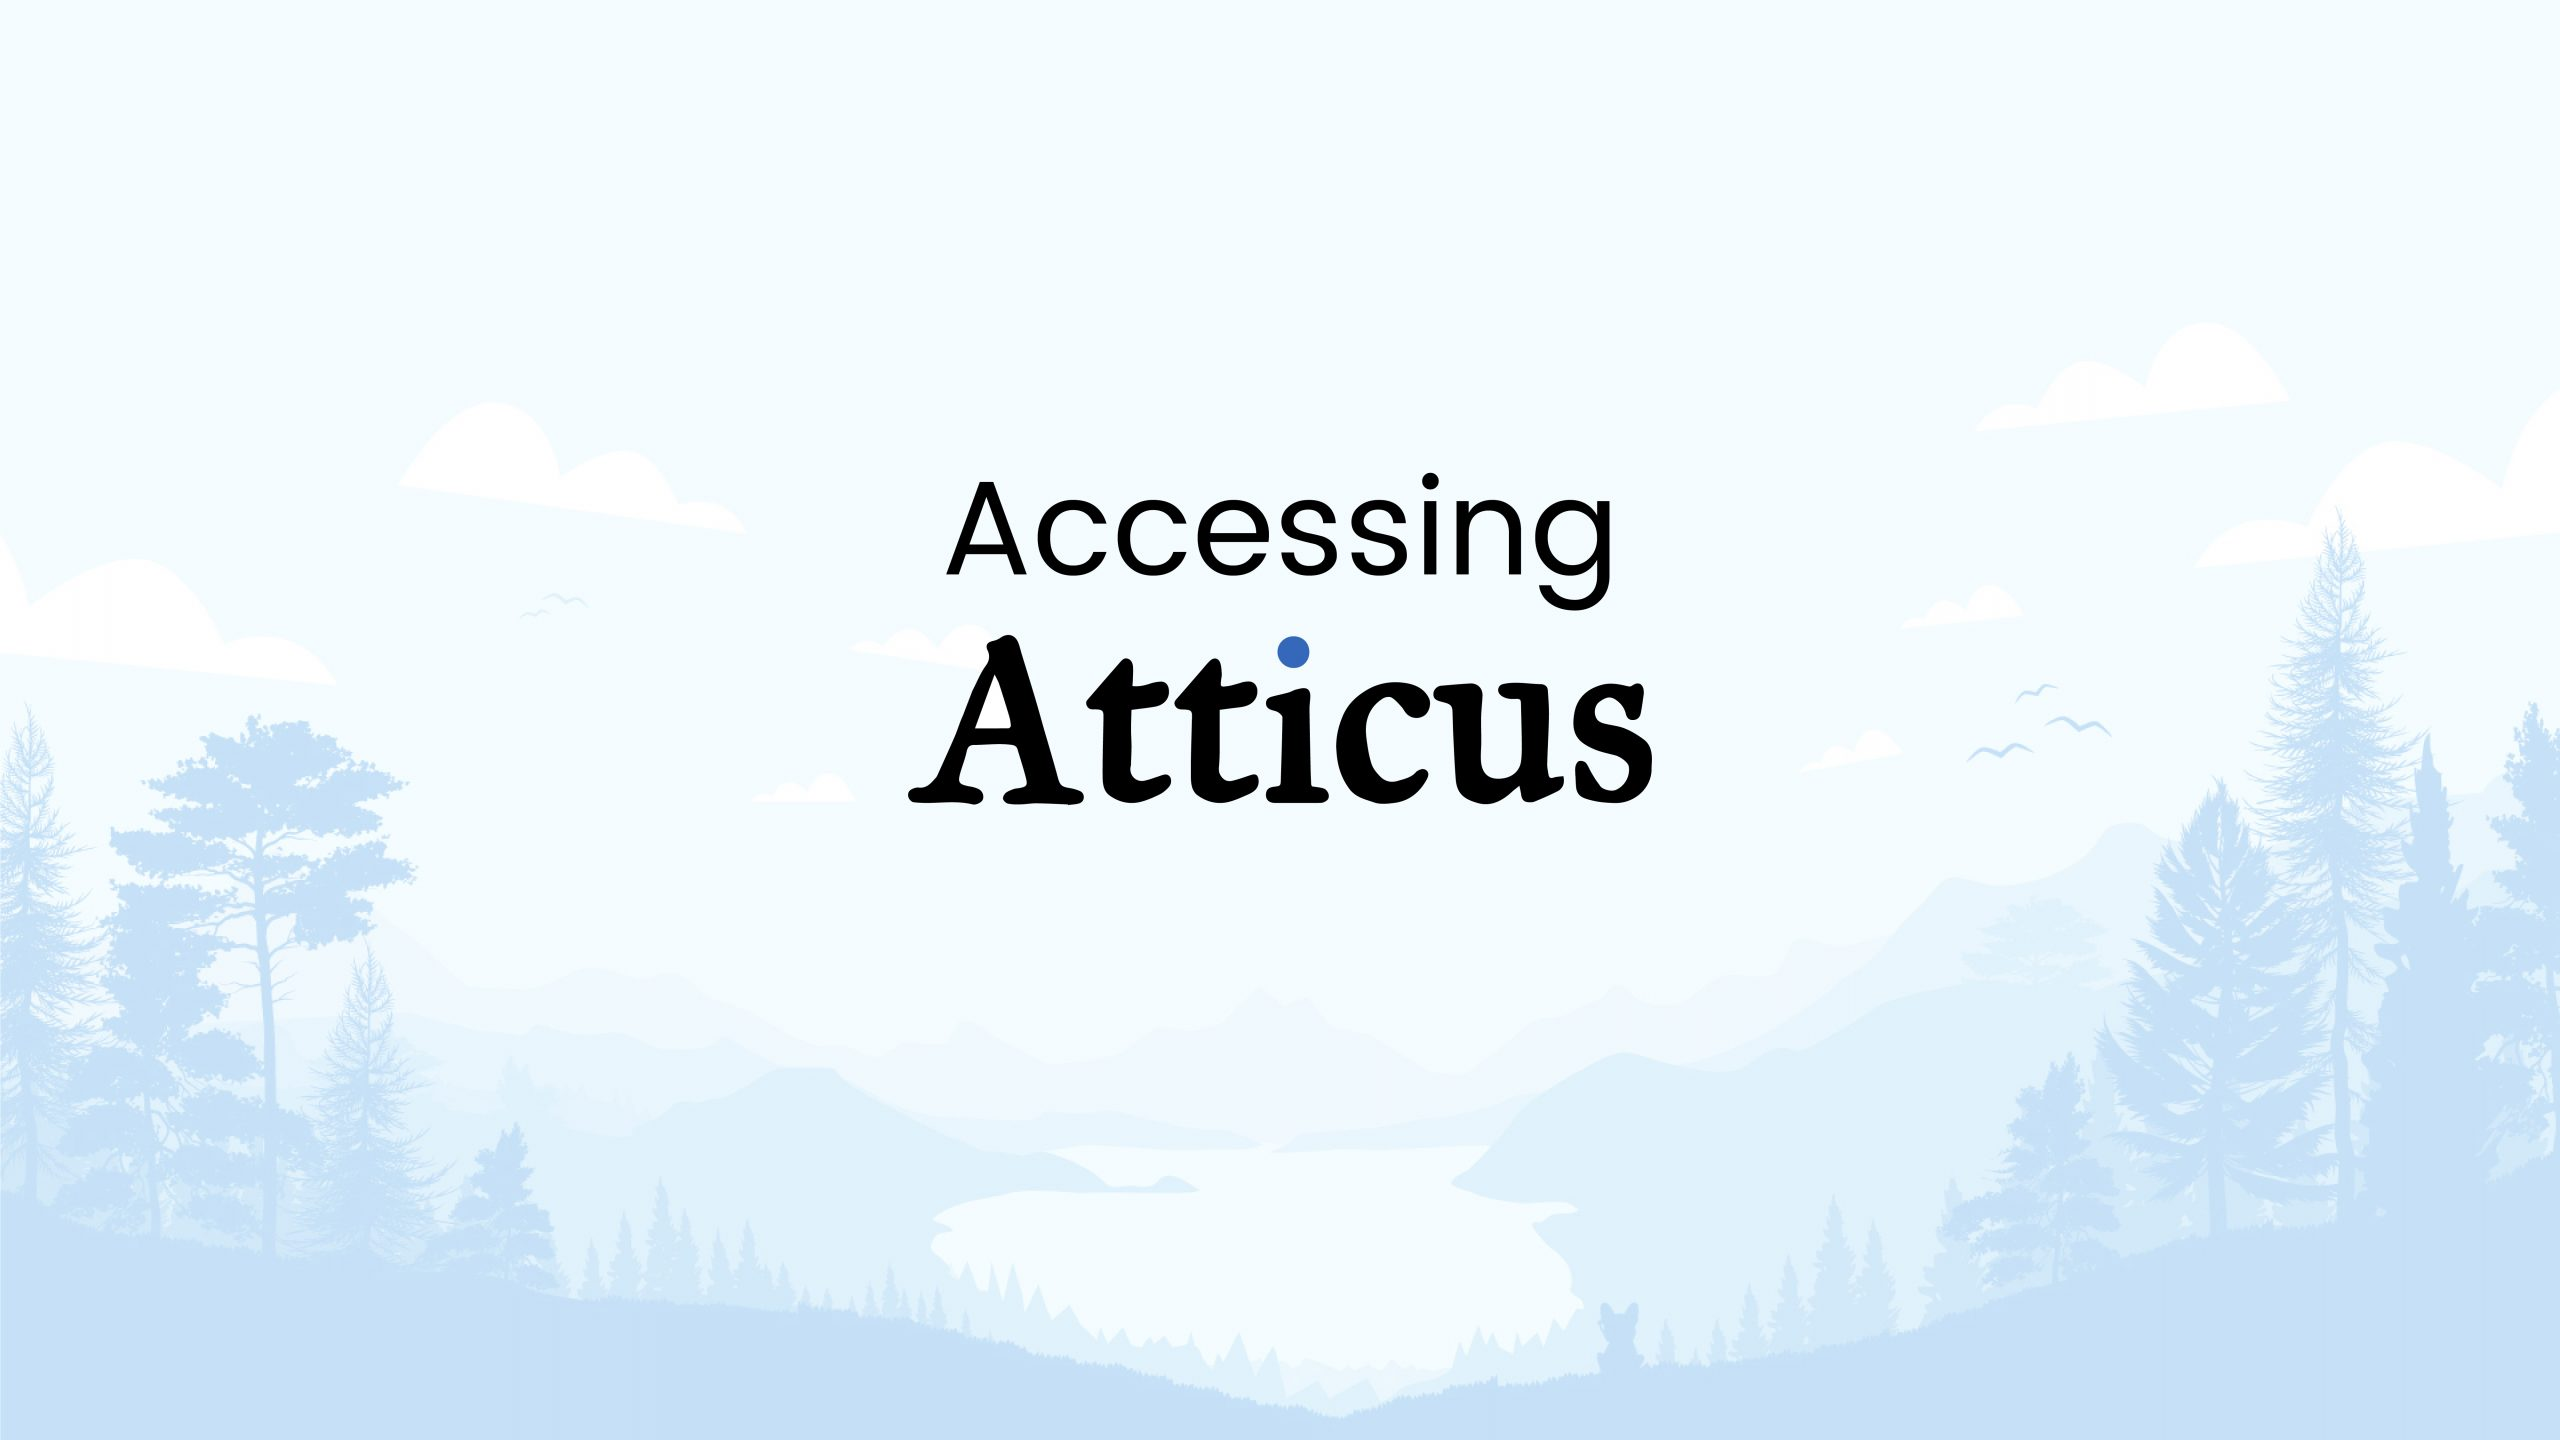 Accessing Atticus video thumbnail - click to watch